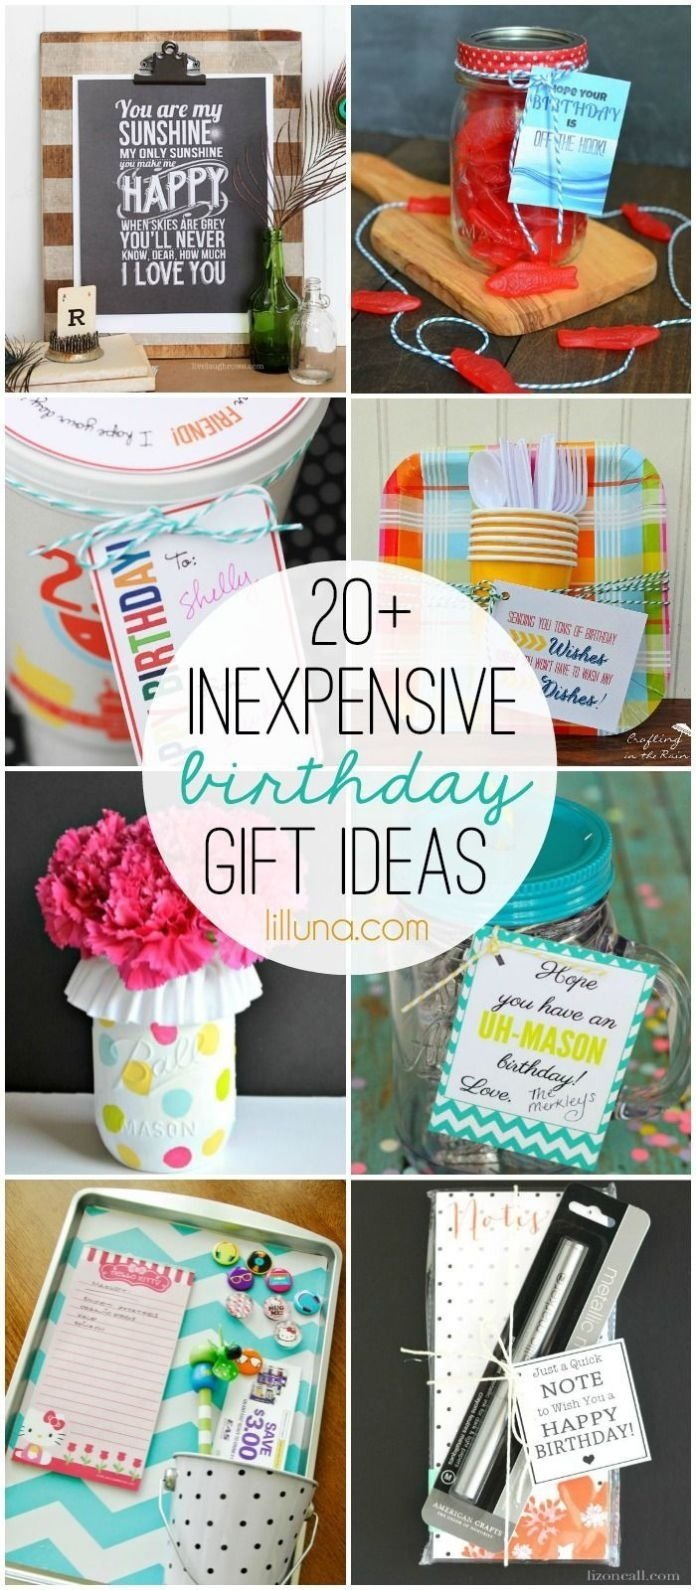 10 Most Recommended Relief Society Birthday Gift Ideas diy crafts ideas inexpensive birthday gifts relief society 2020